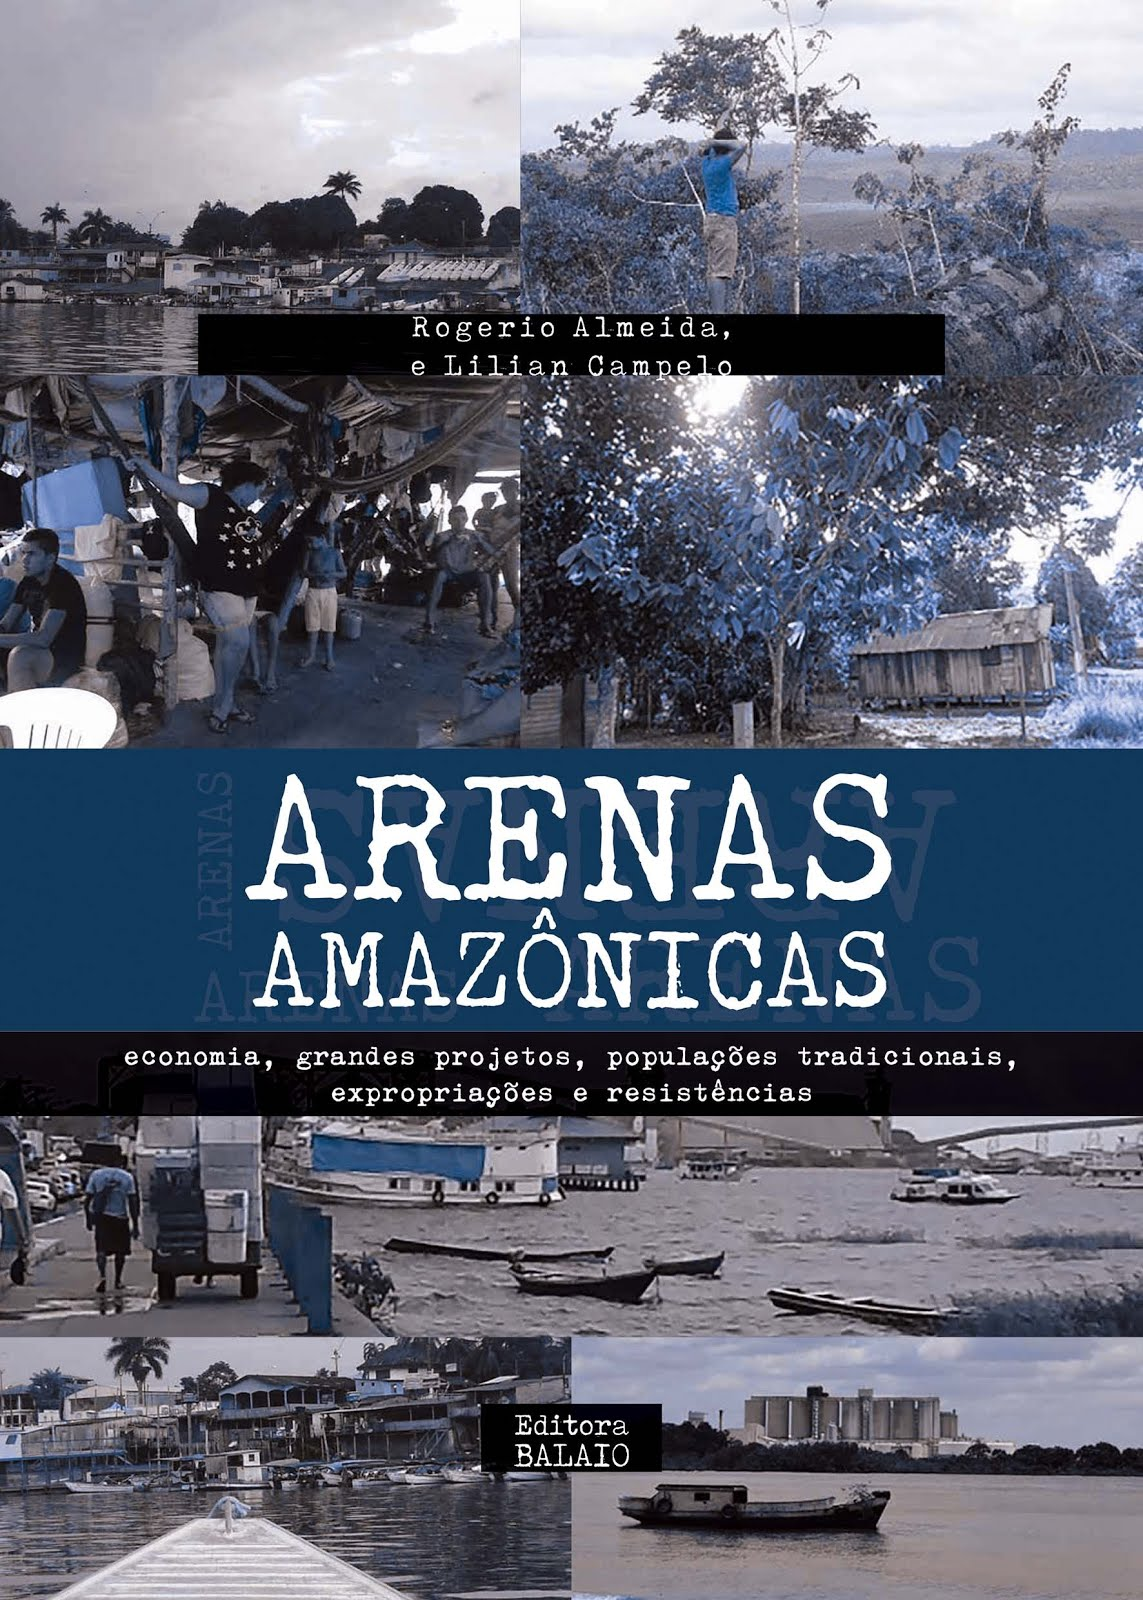 Arenas Amazônicas